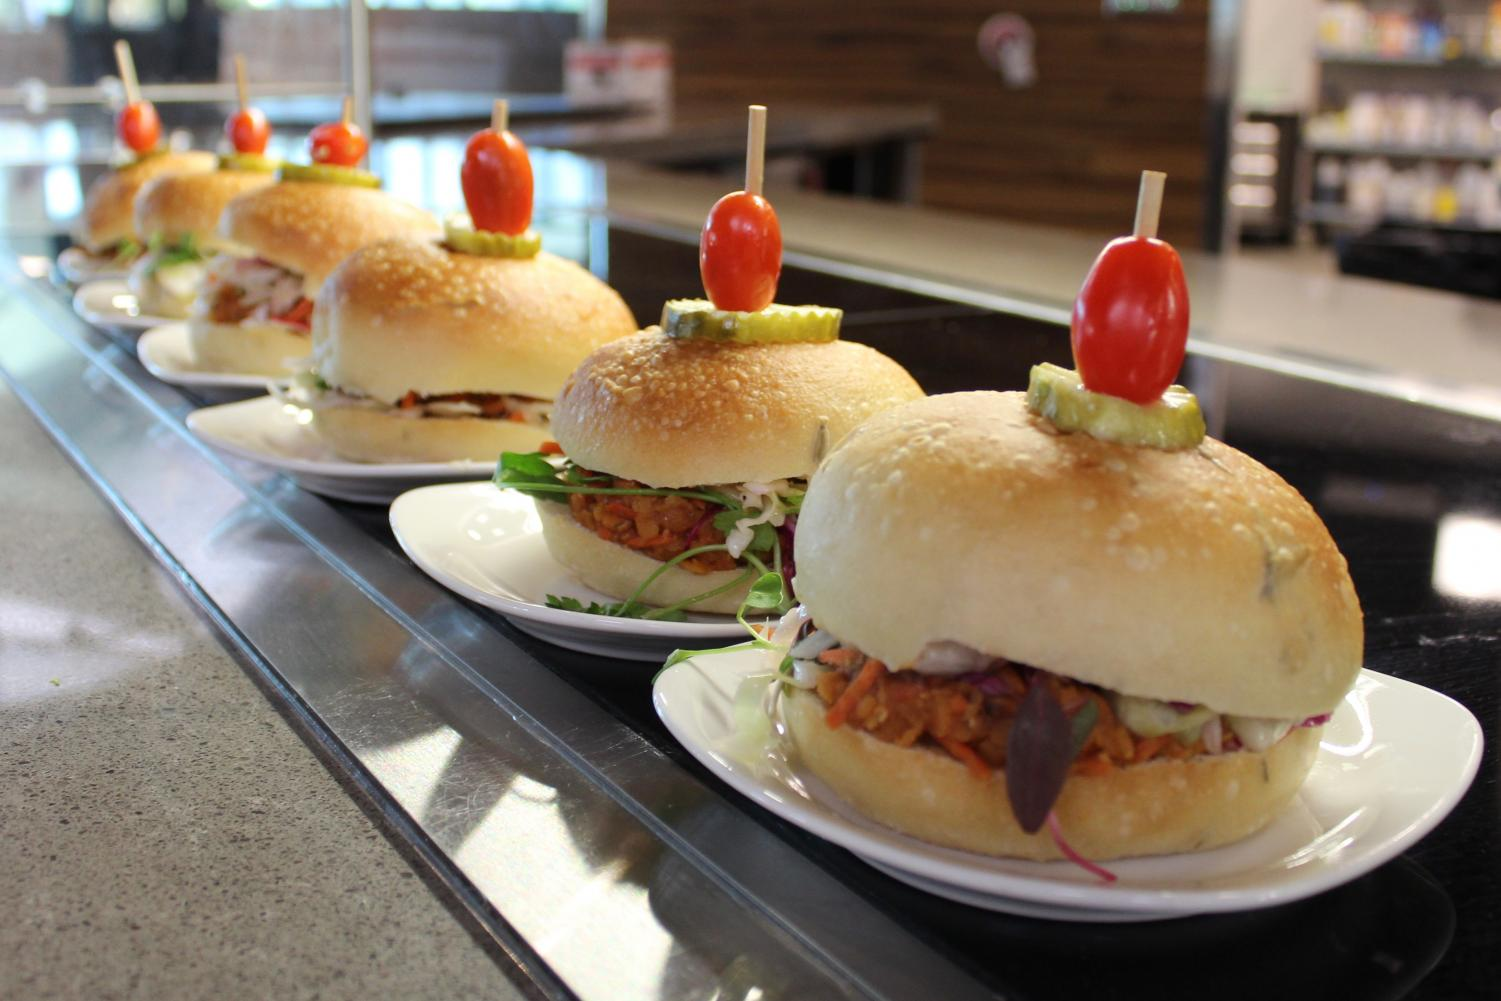 University of Colorado Boulder Campus Dining Services offered vegan barbecue sandwiches on Oct. 4, 2017 during the Forward Food Leadership Summit.